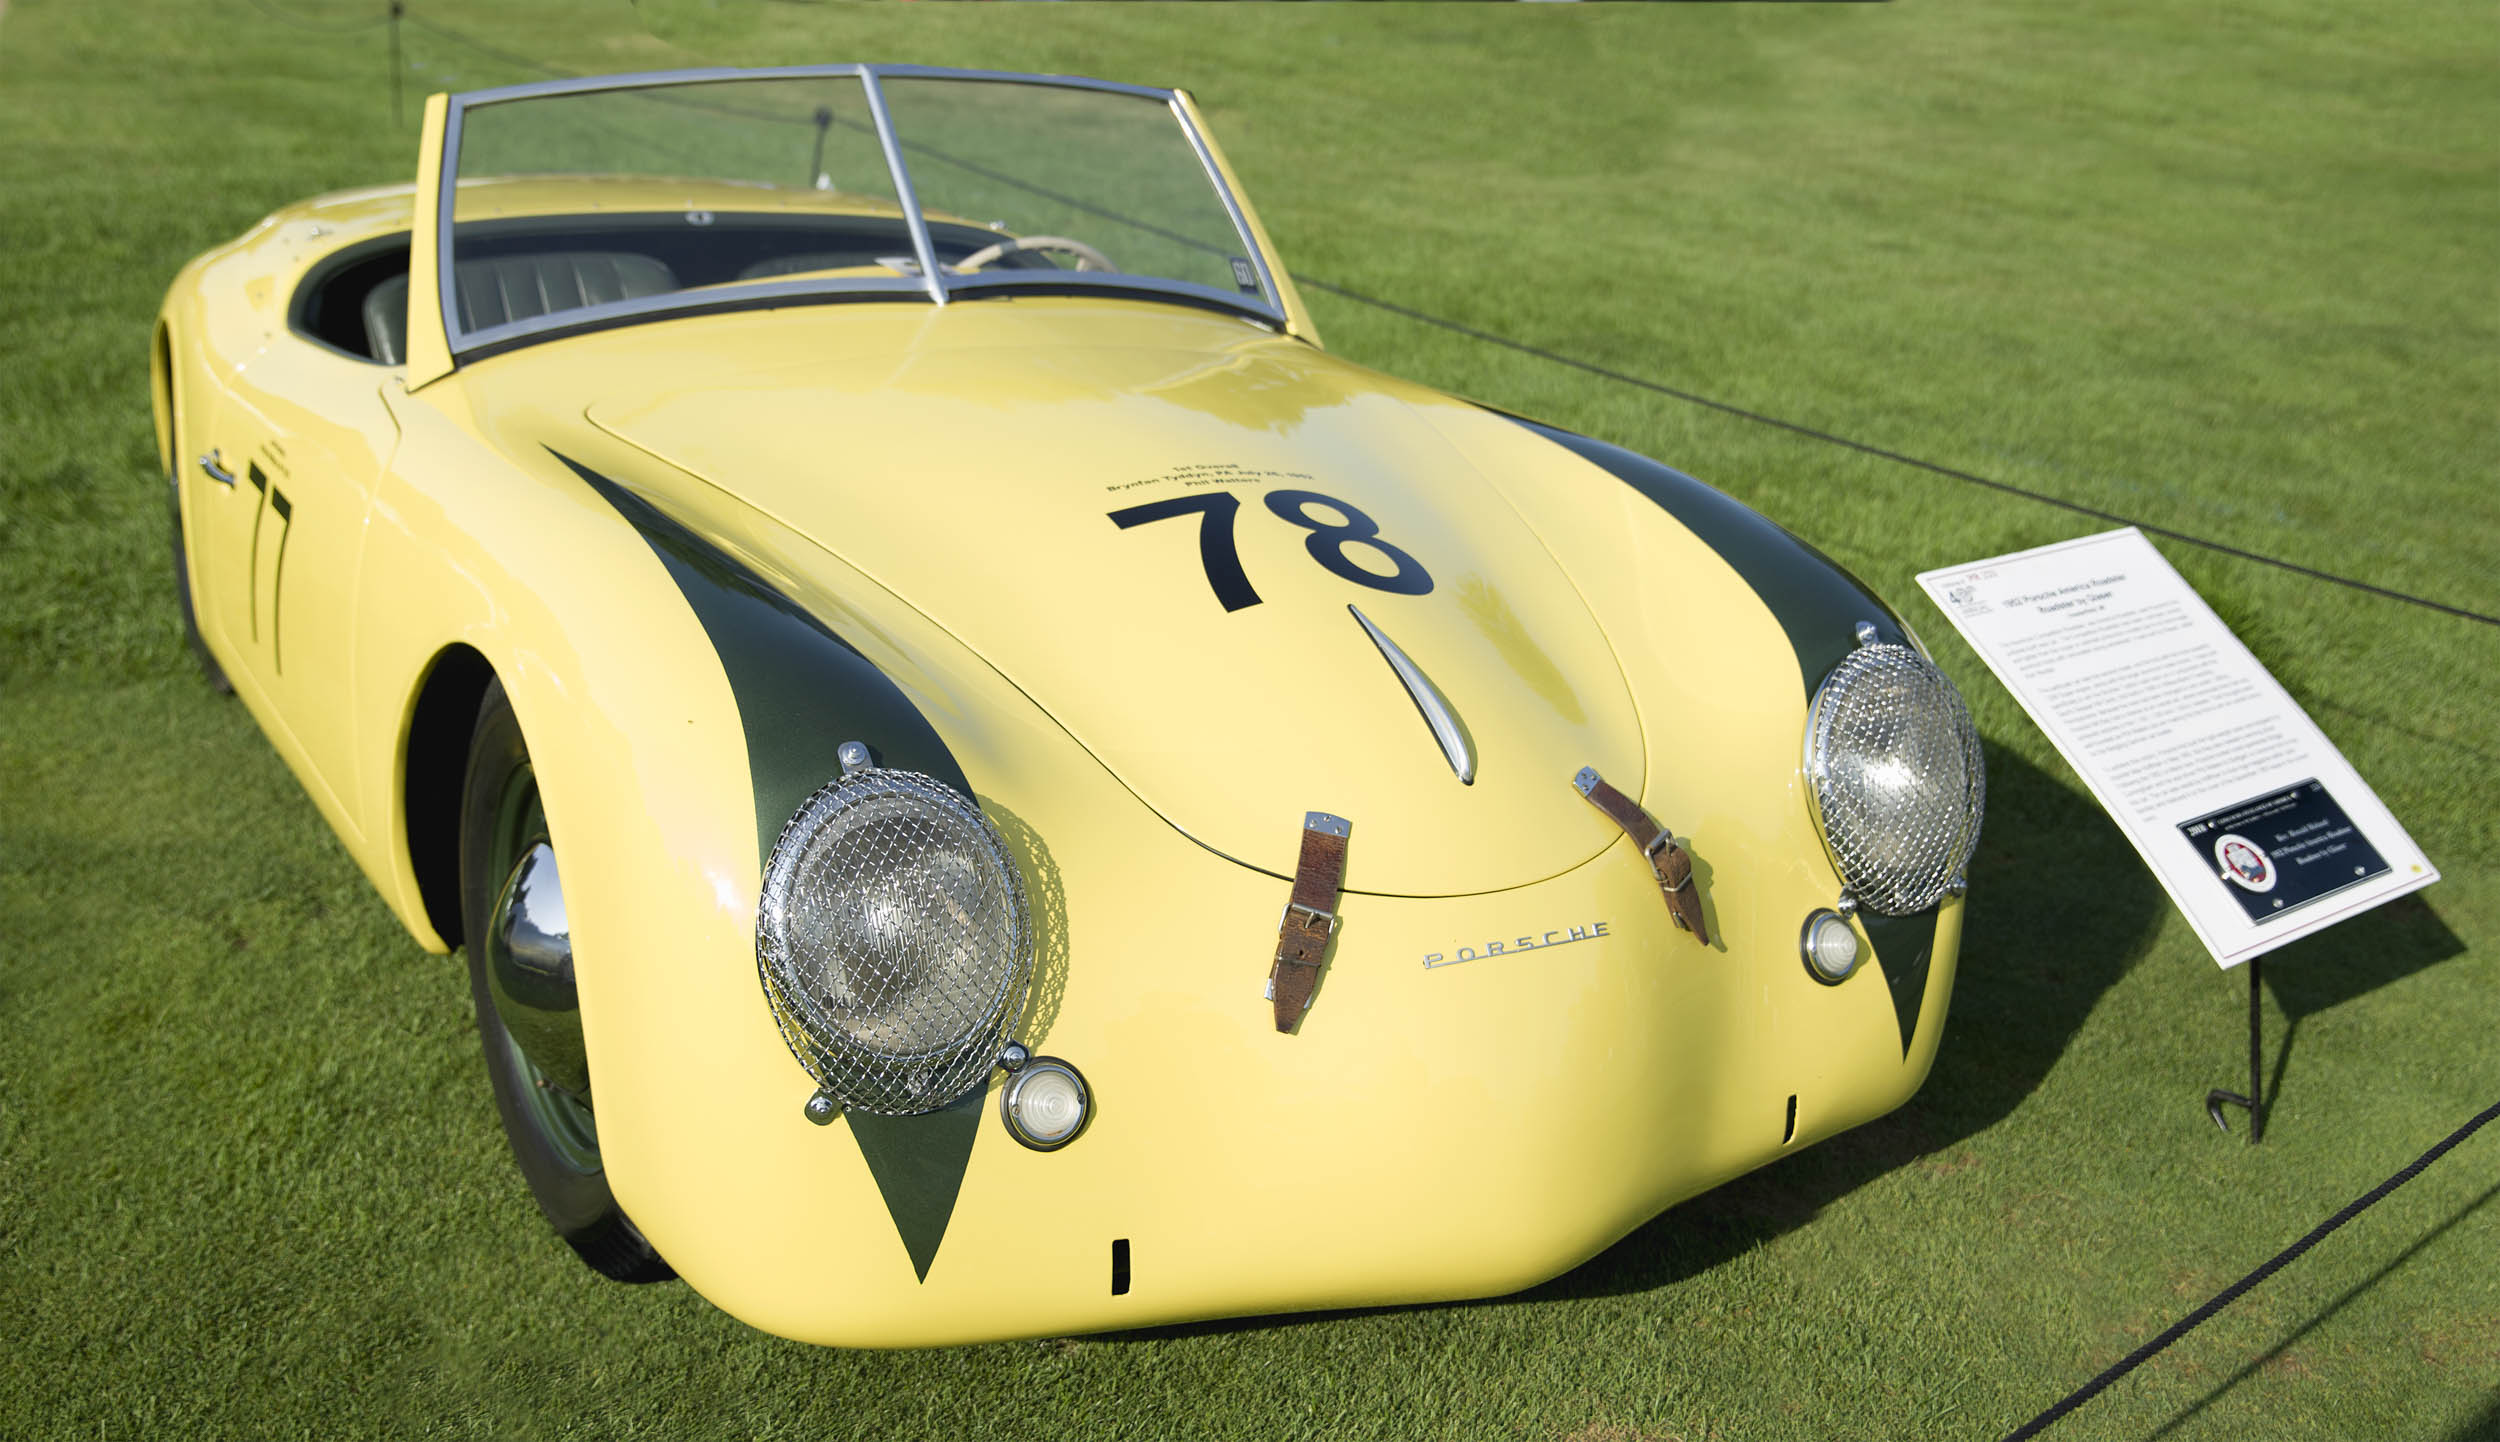 The Porsche America Roadster at the Concours d'Elegance of America in Plymouth, Michigan.